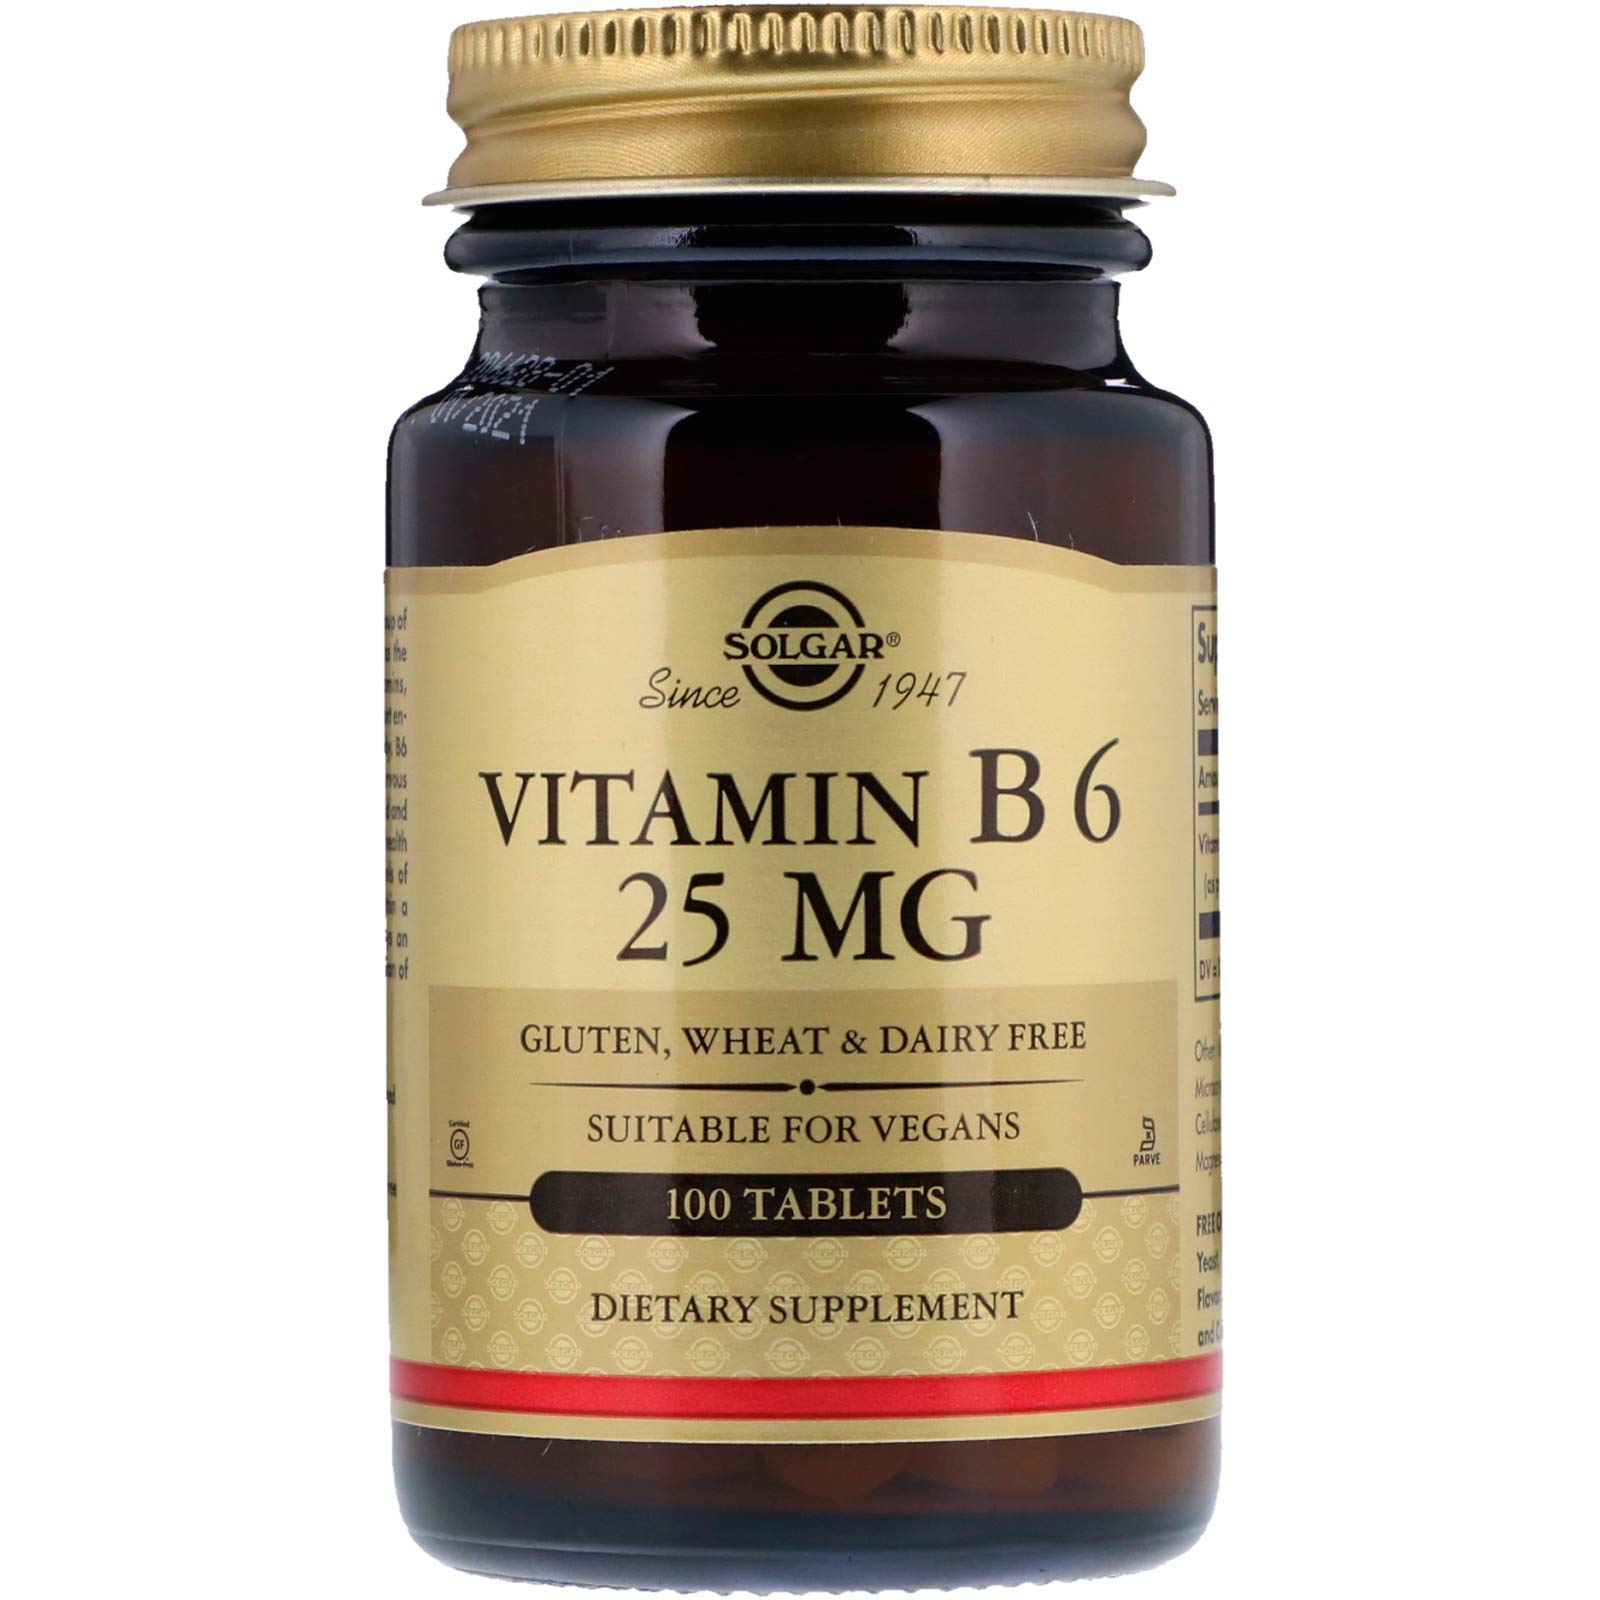 Solgar – Vitamin B6, 25 mg, 100 Tablets